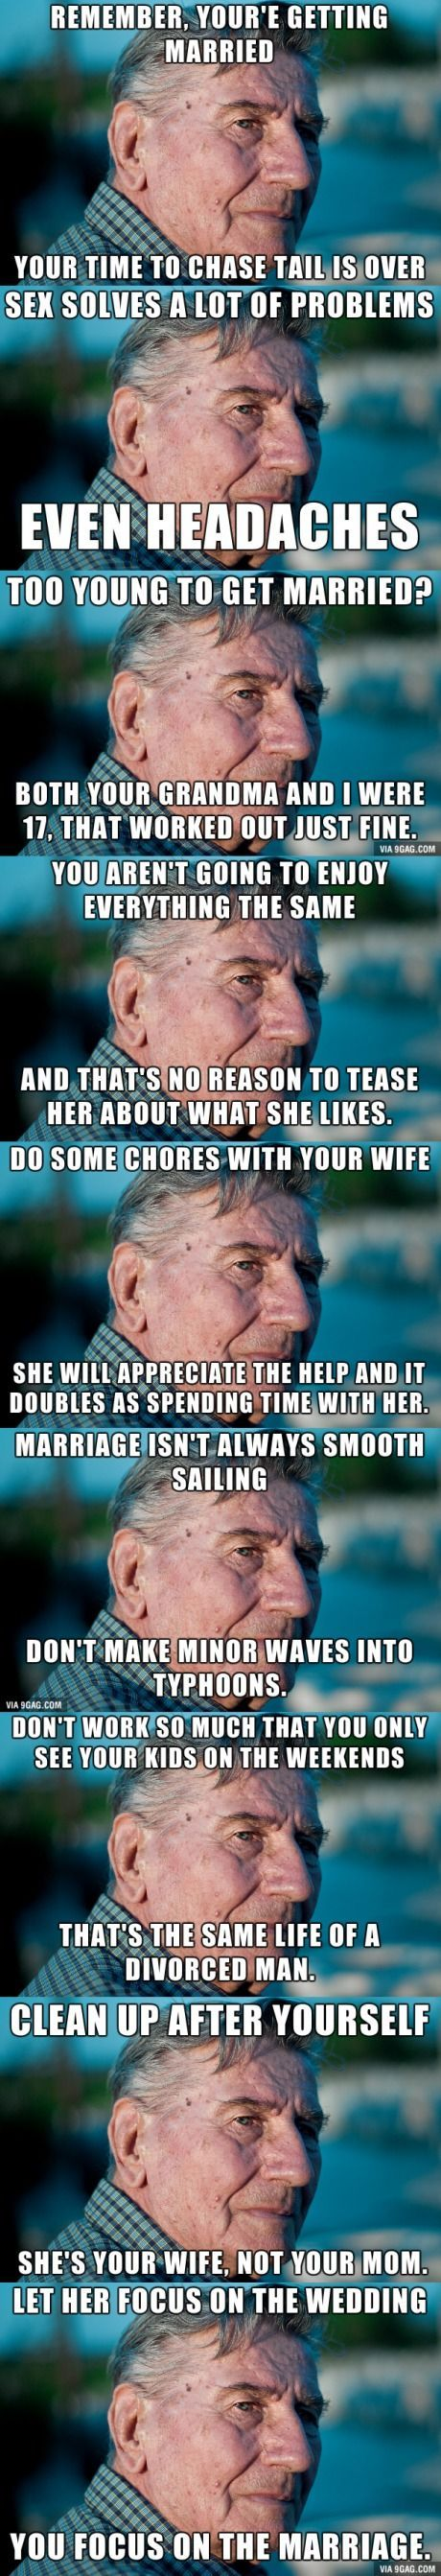 Best Marriage Advice- this actually made me tear up a bit relationship quotes, relationship tips